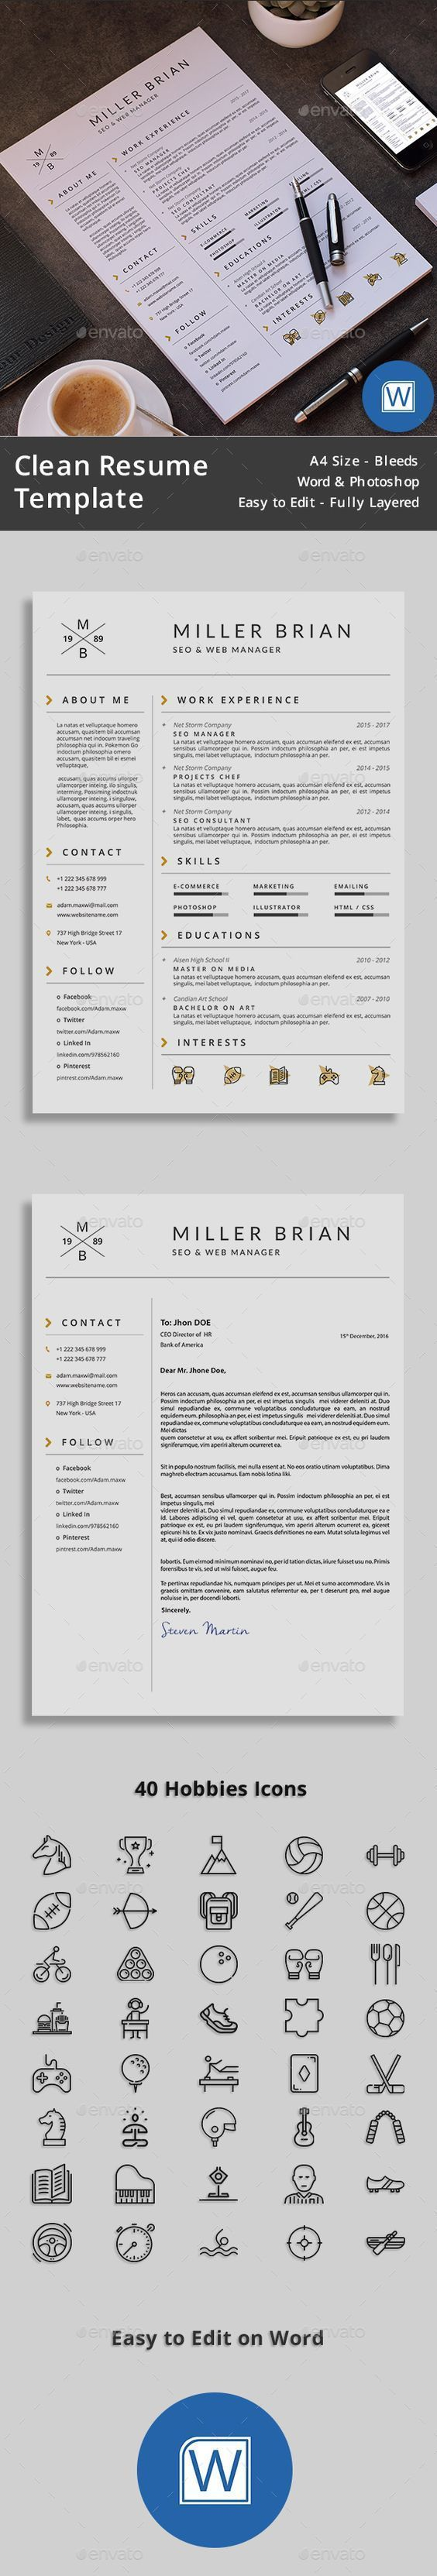 Chronological Resume Samples%0A Professional  u     Modern Resume Template for MS Word   CV Template for word   Resume  template for word       Editable   Instant Digital Download